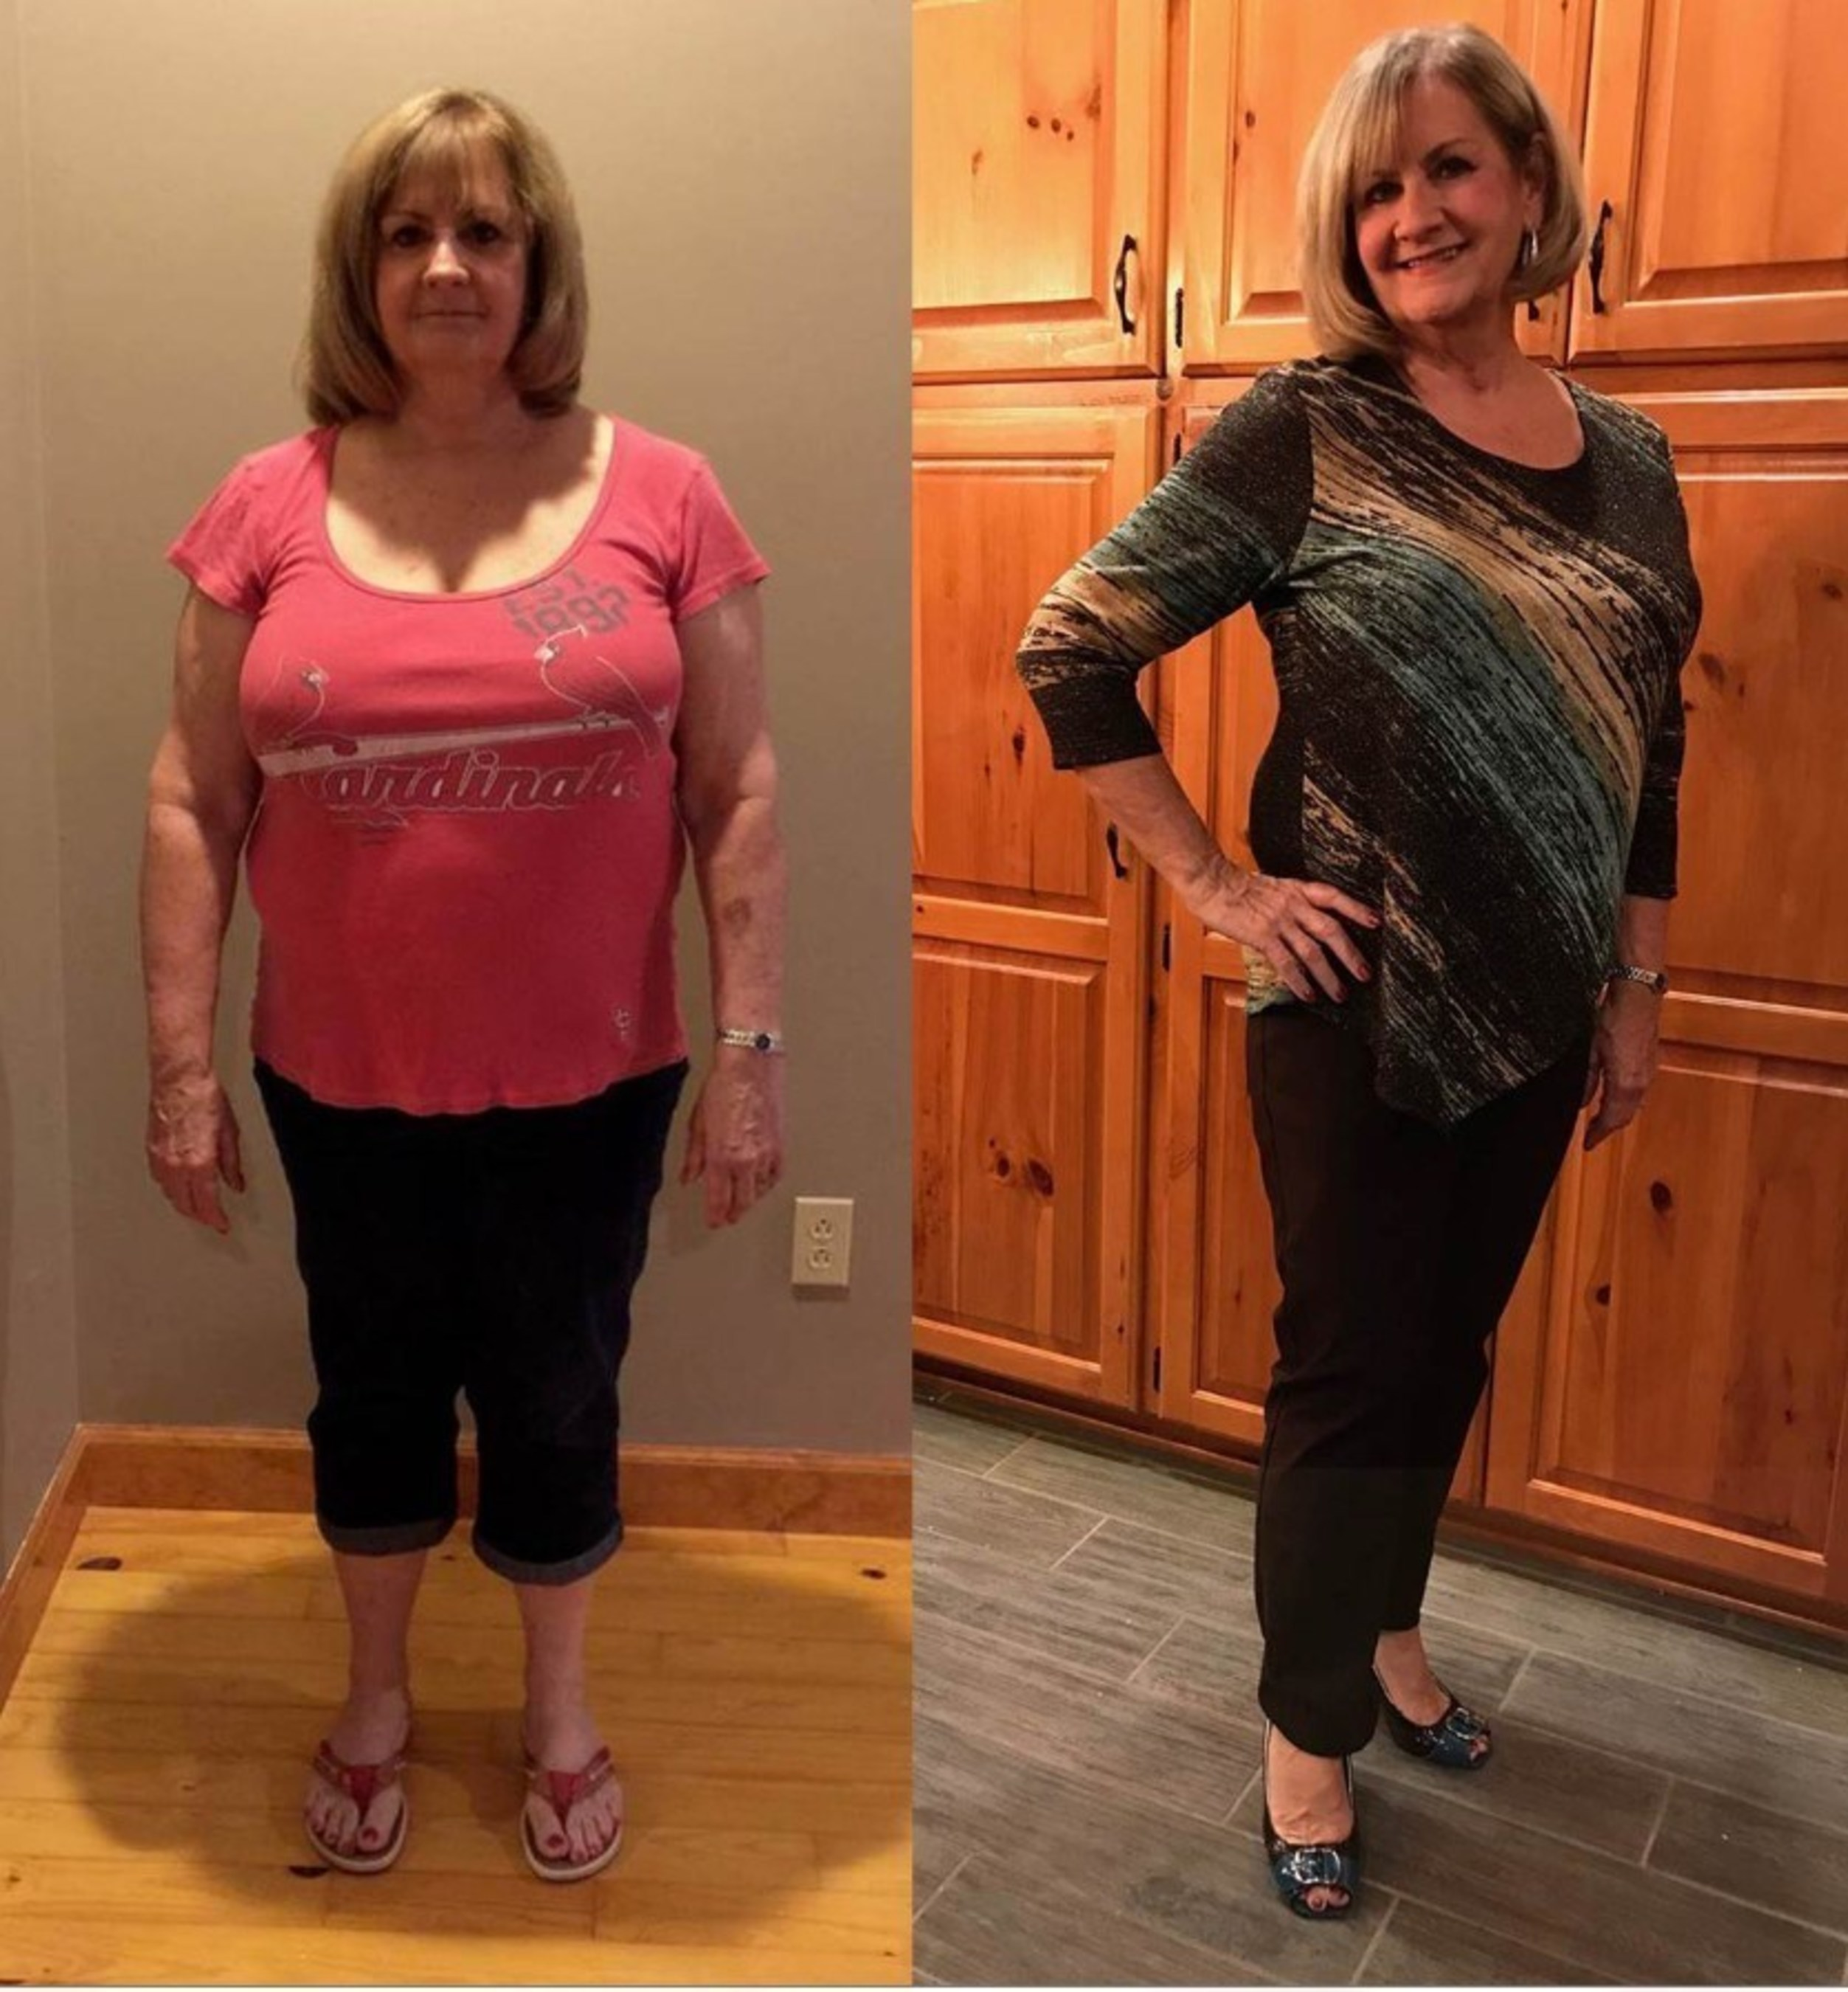 After diet and exercise failed, Andrea lost 50 pounds in just five months with ReShape.